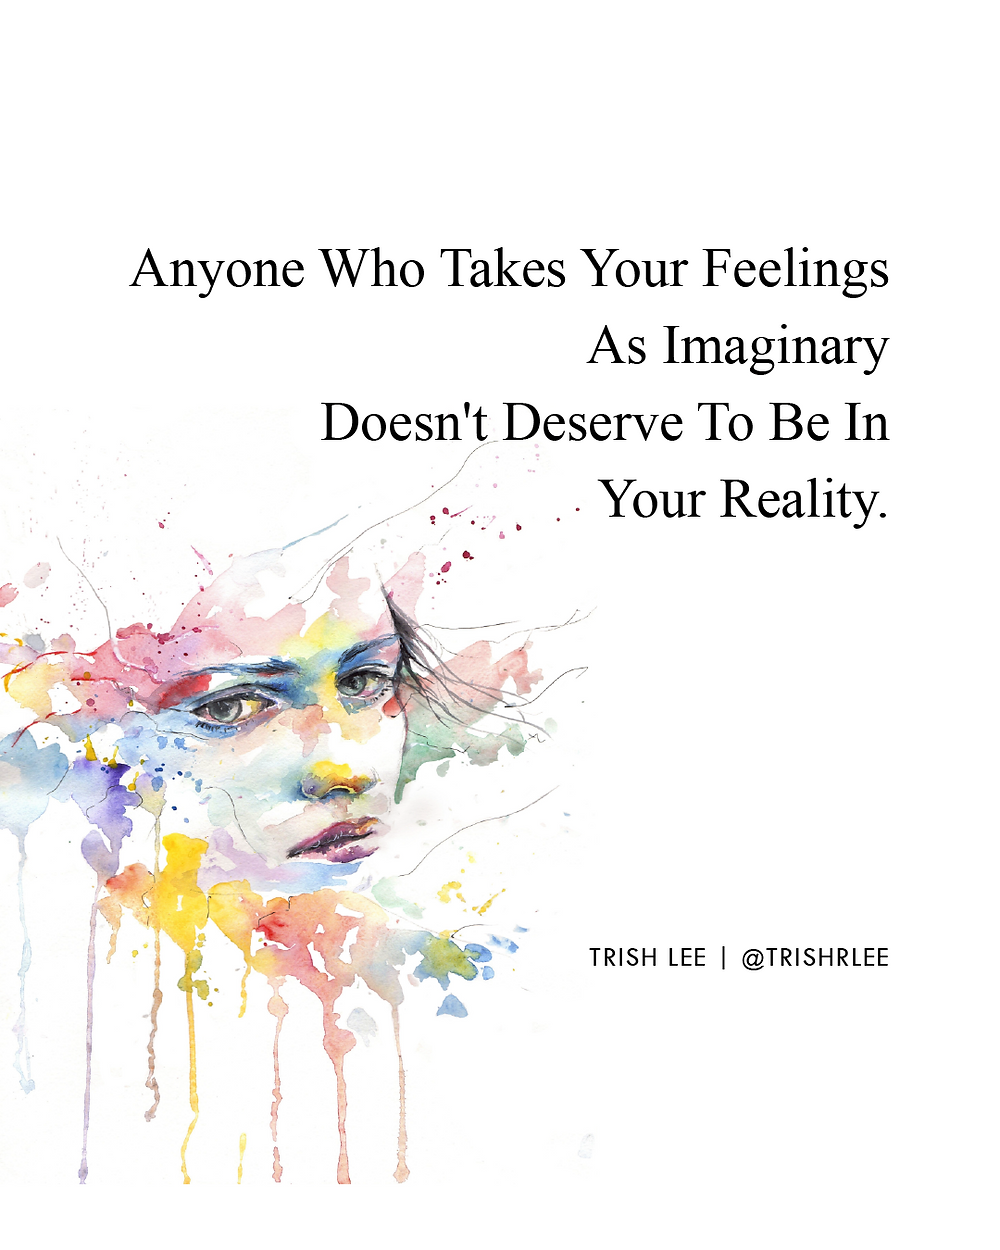 Are Your Feelings Being Taken For Granted?